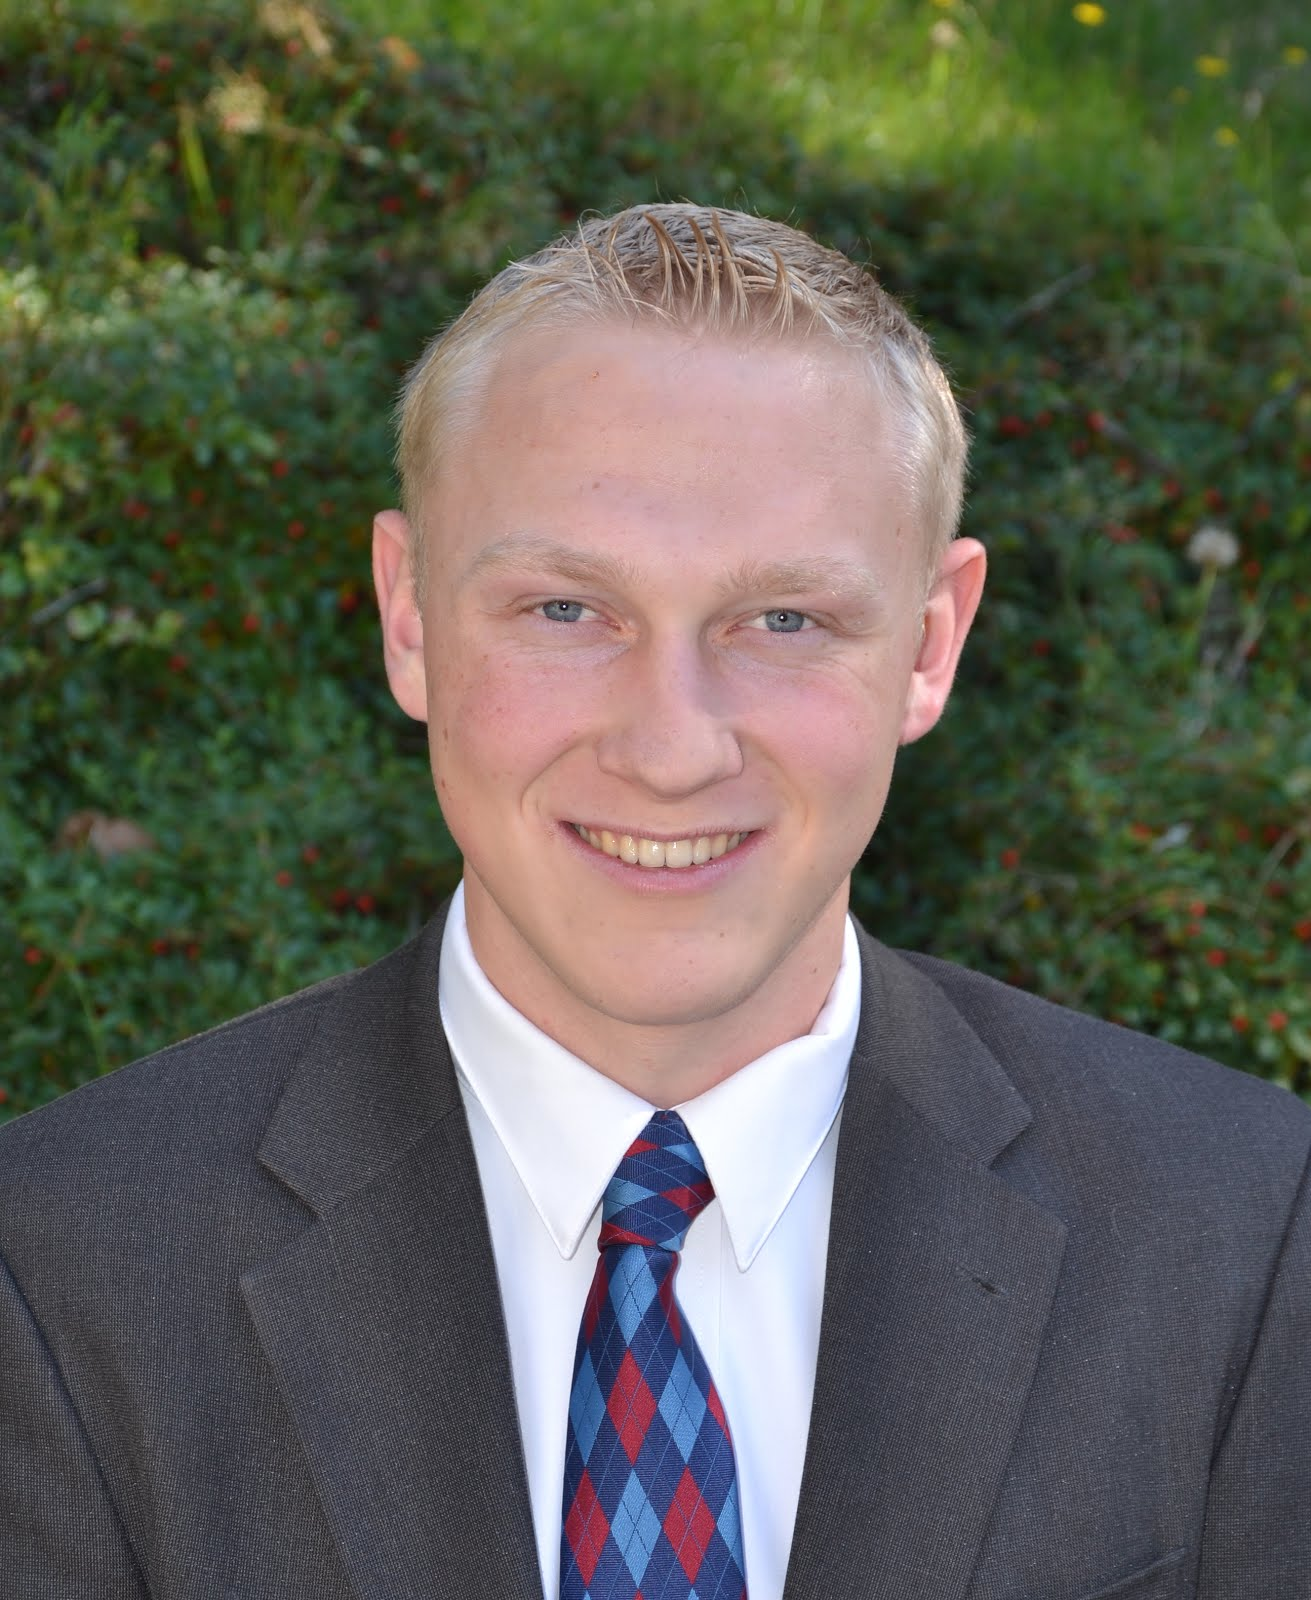 Our Missionary: Elder Dallin Shurts